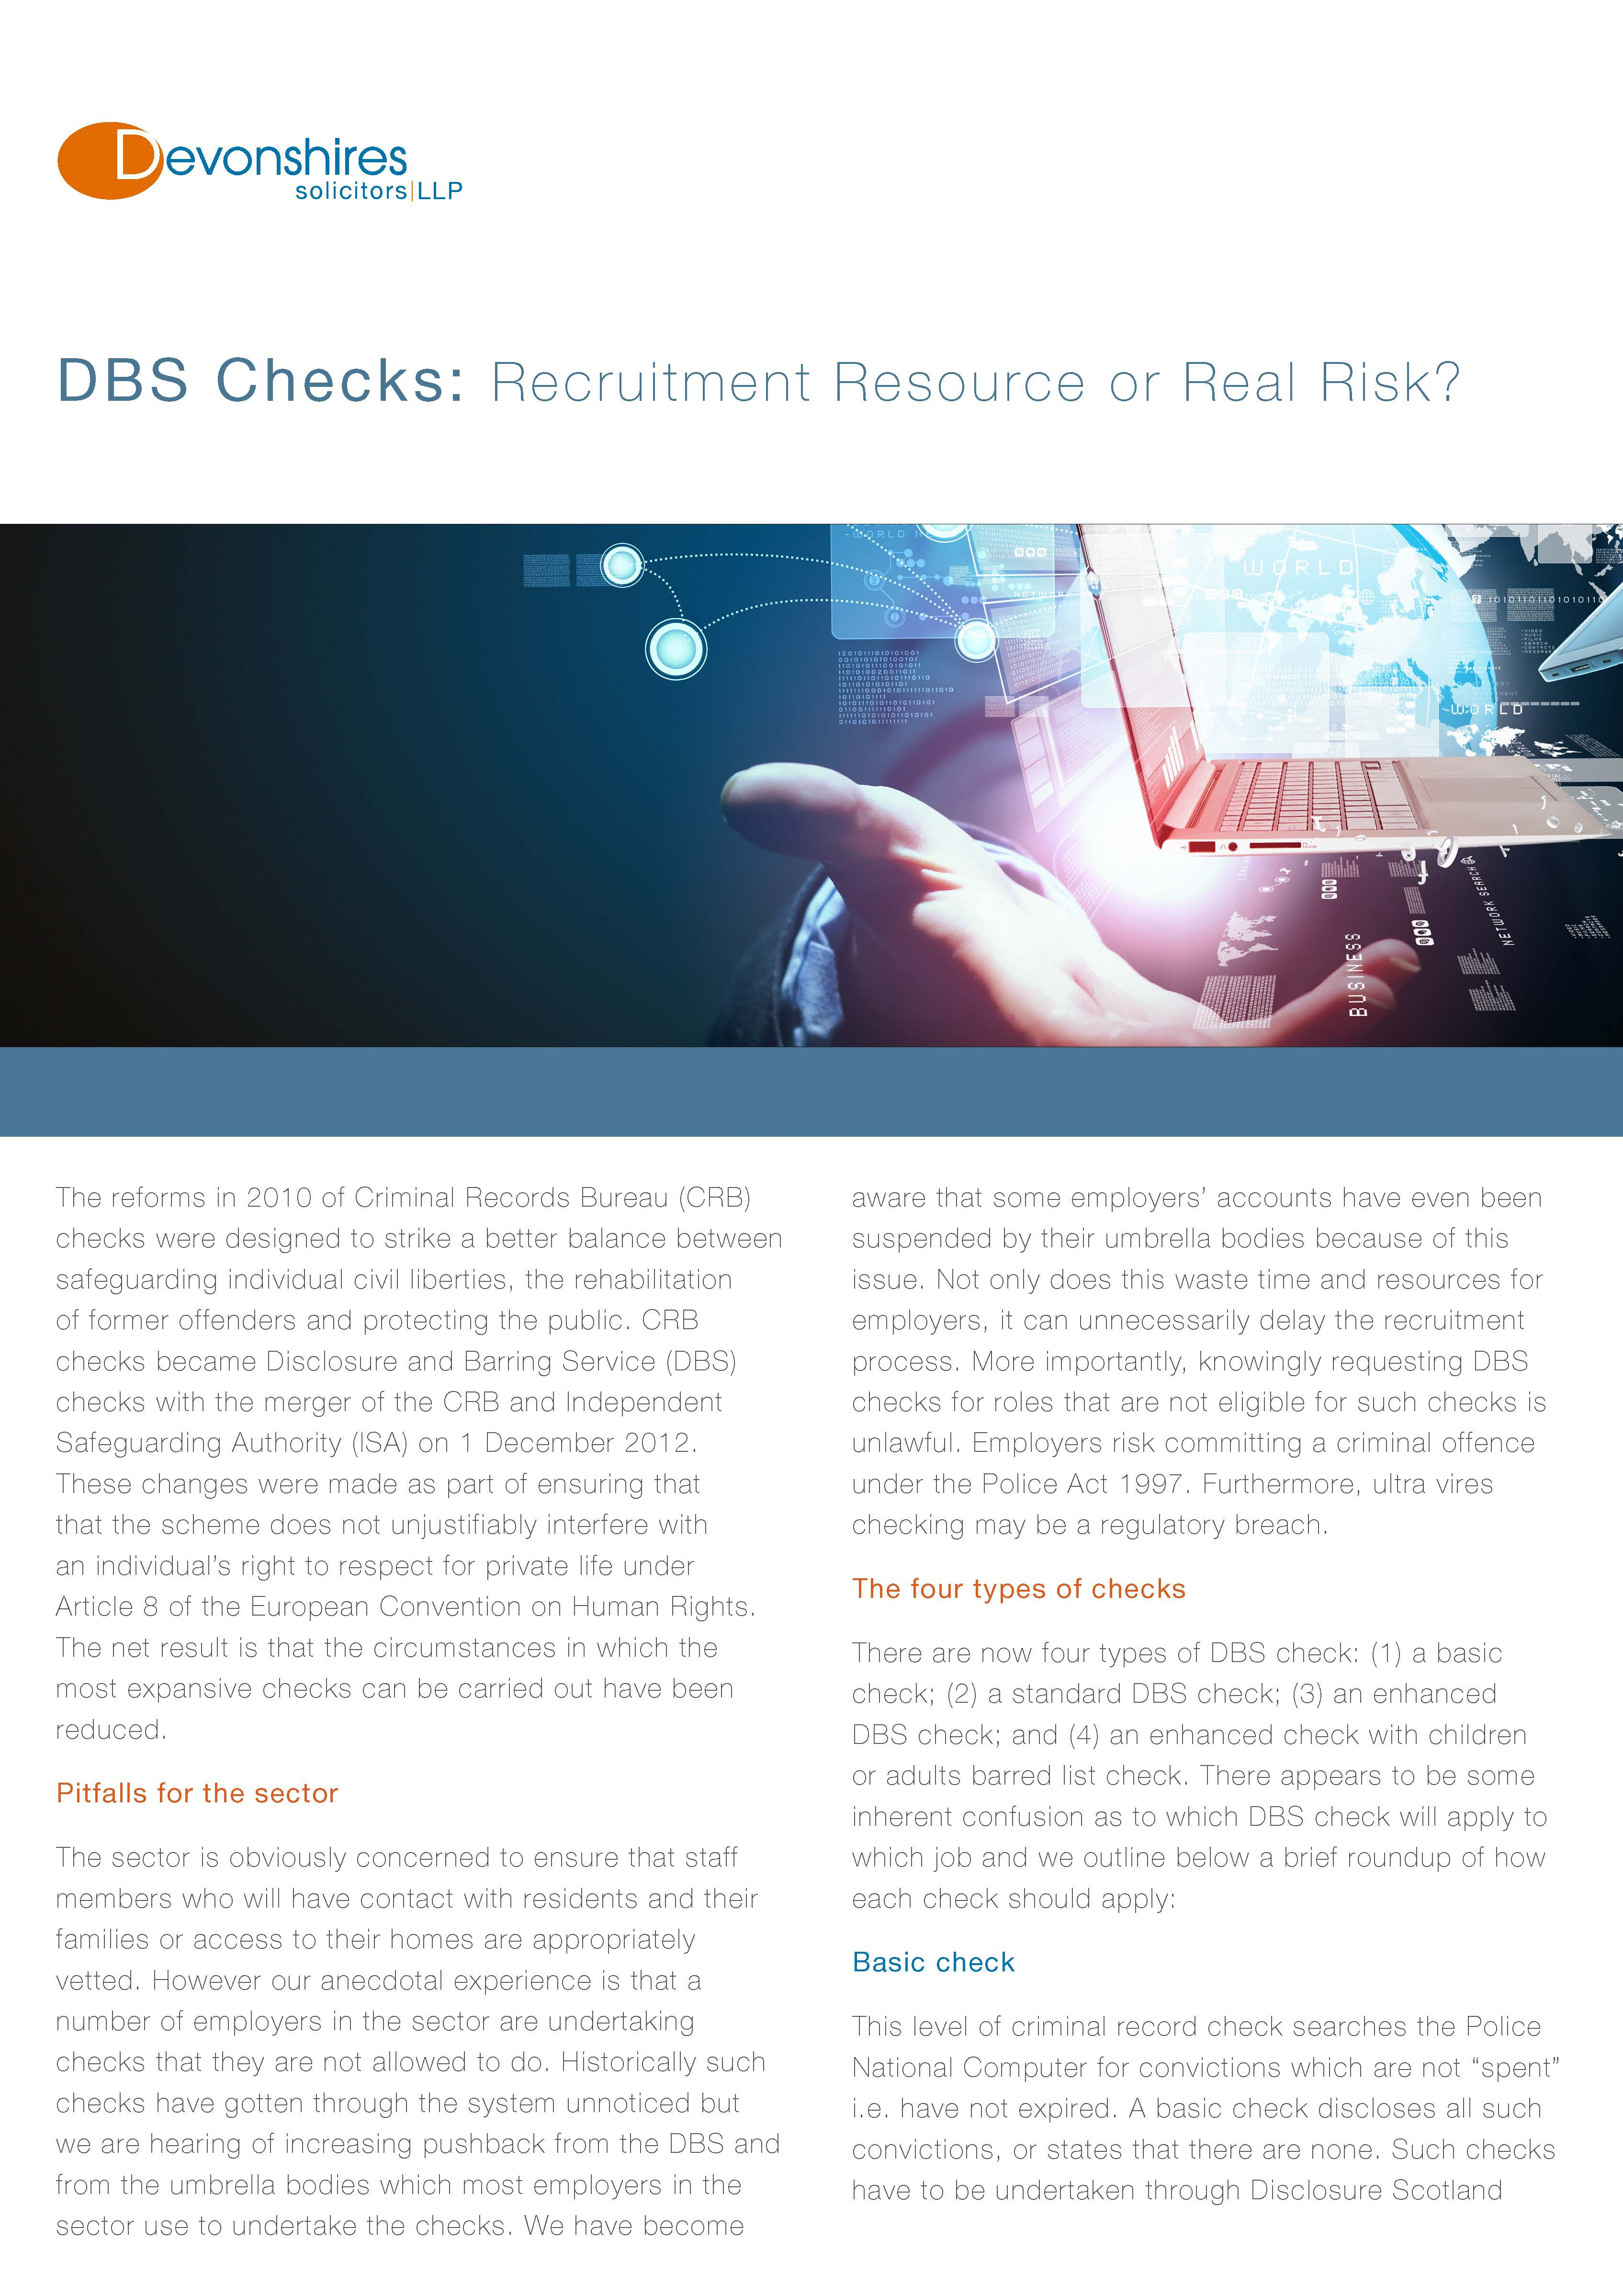 DBS_Checks_Recruitment_Resource_or_Real_Risk_Page_1